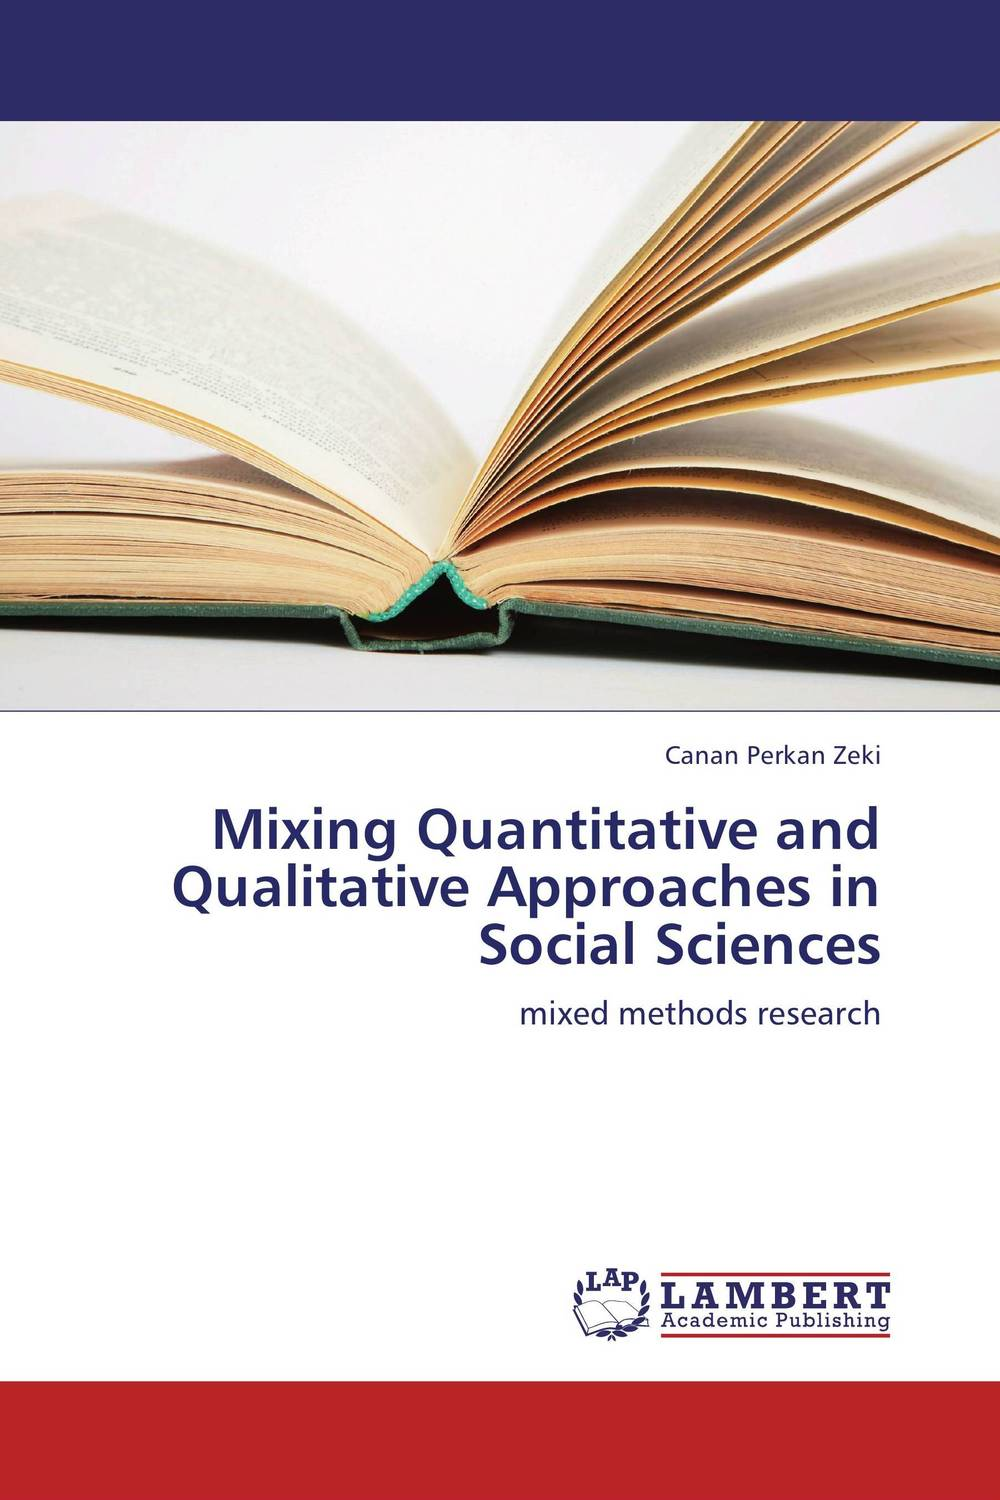 Mixing Quantitative and Qualitative Approaches in Social Sciences particle mixing and settling in reservoirs under natural convection